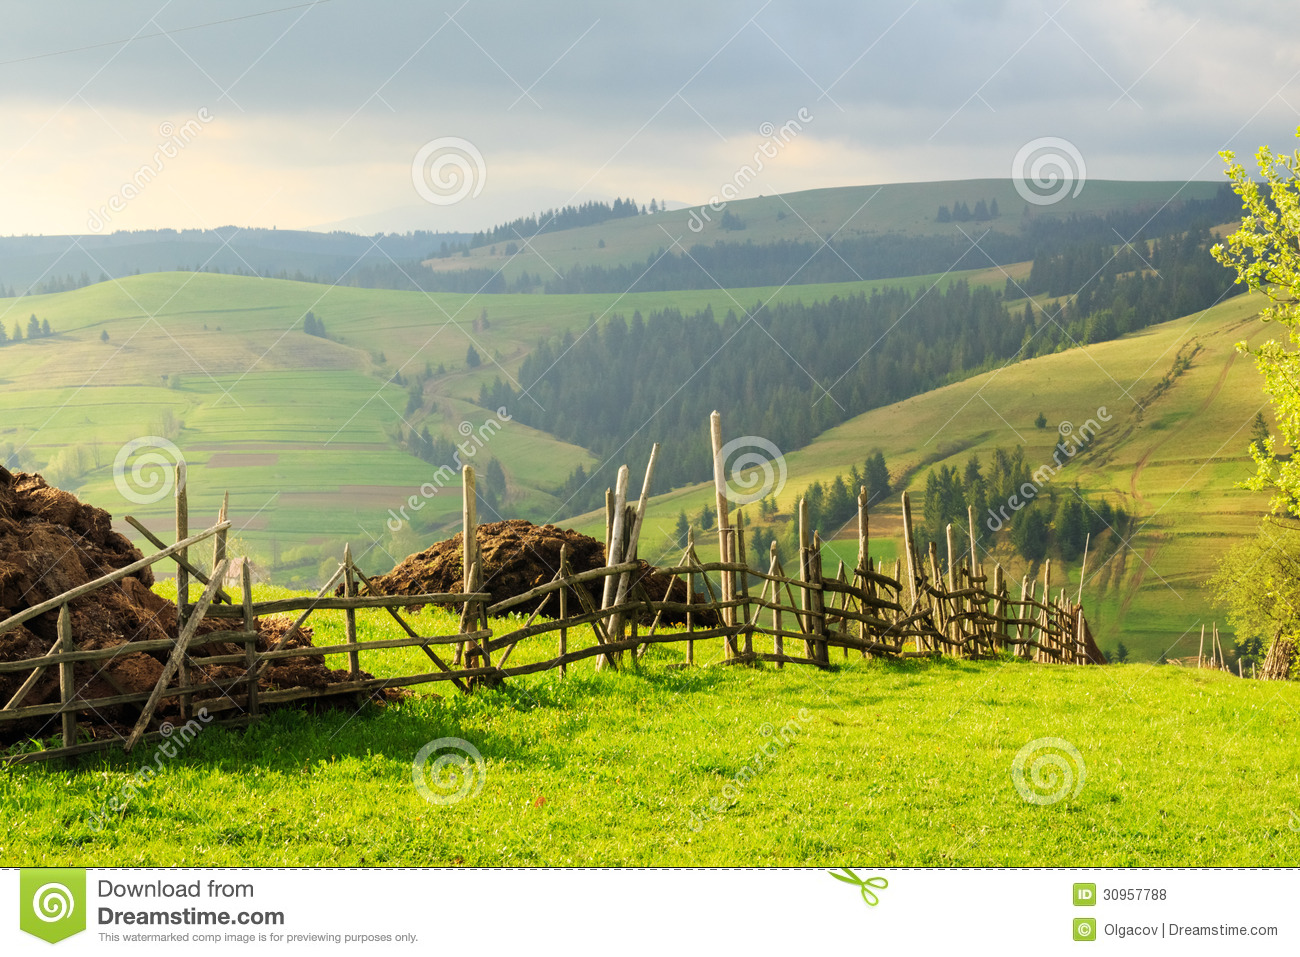 Wallpaper Fall Weather Spring Landscape In The Carpathian Mountains With Fence